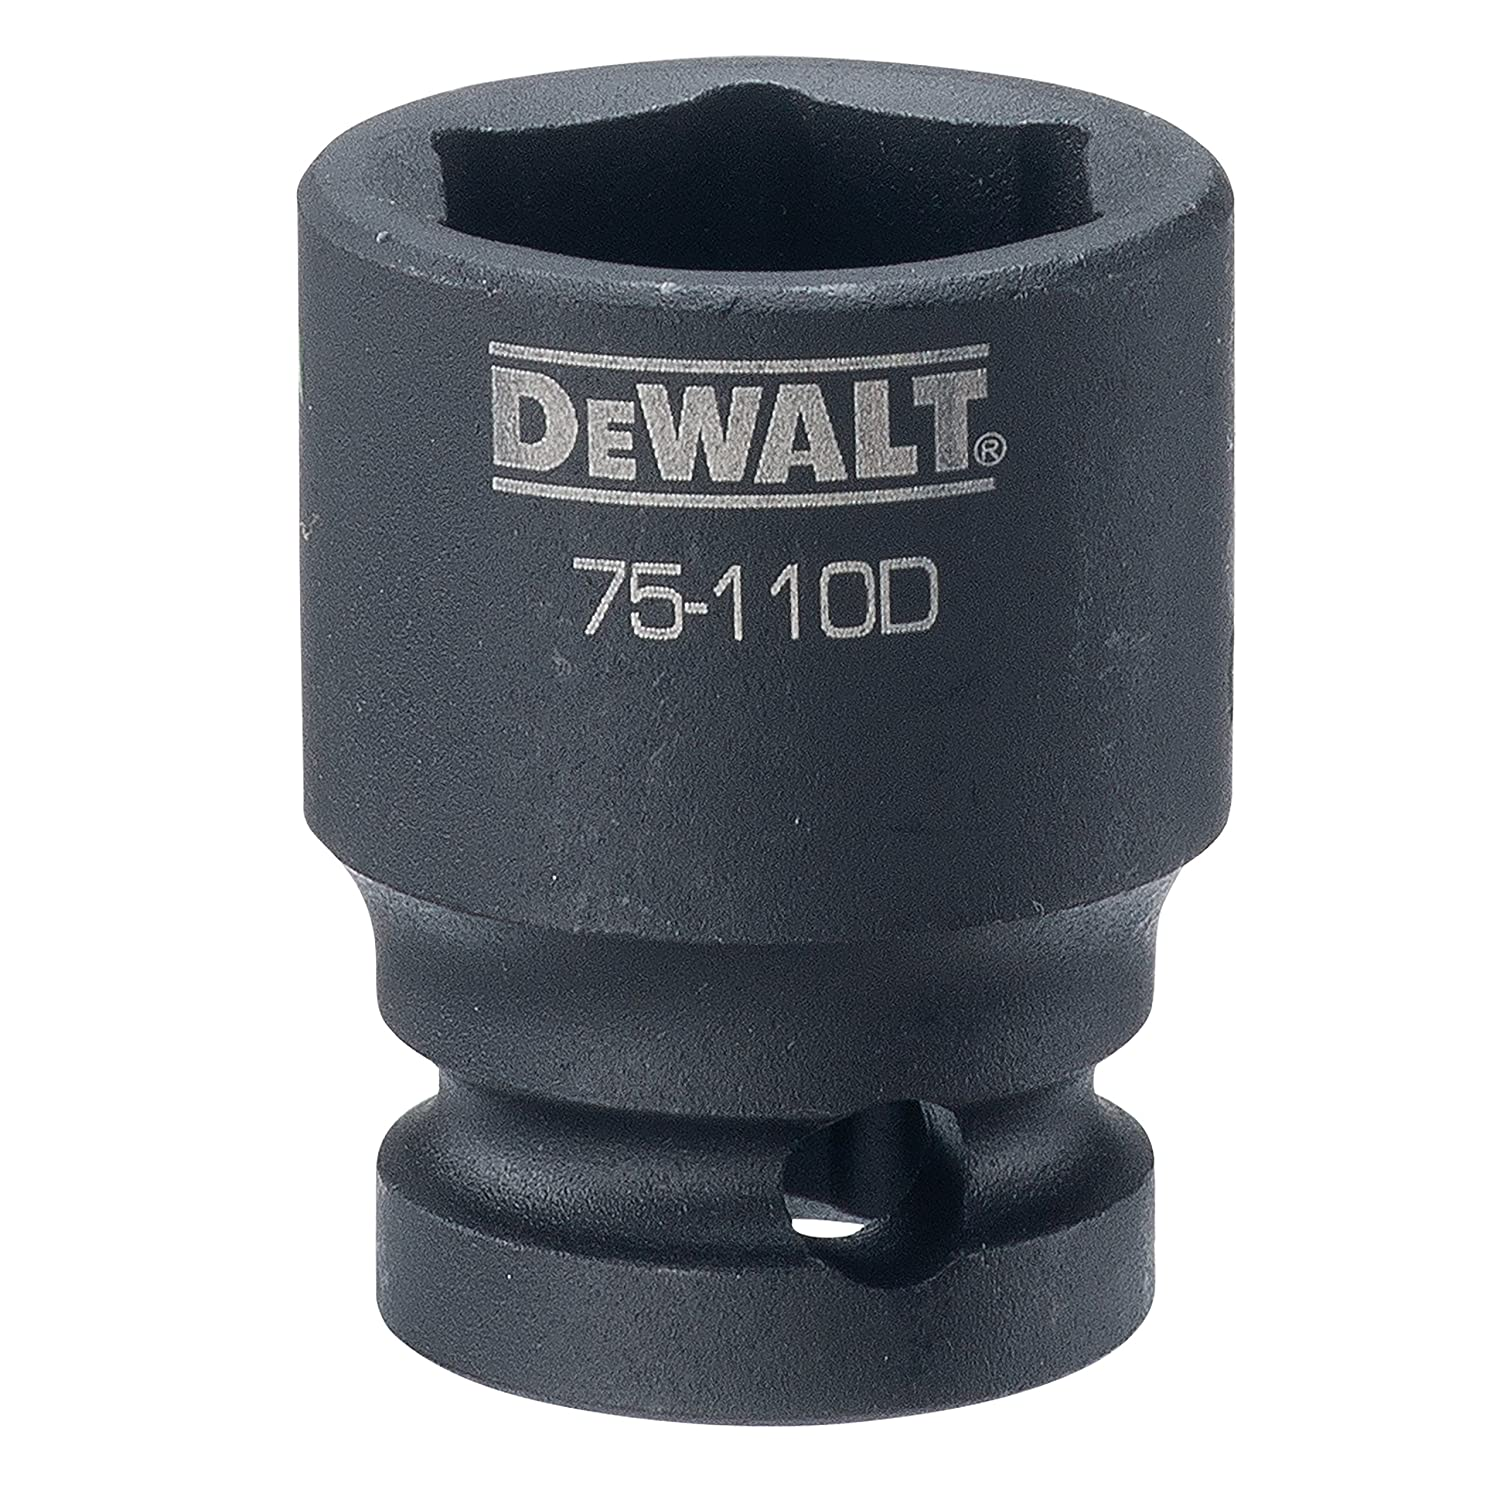 DEWALT DWMT75110OSP 6 Point 1/2' Drive Impact Socket 20MM DWMT75110B